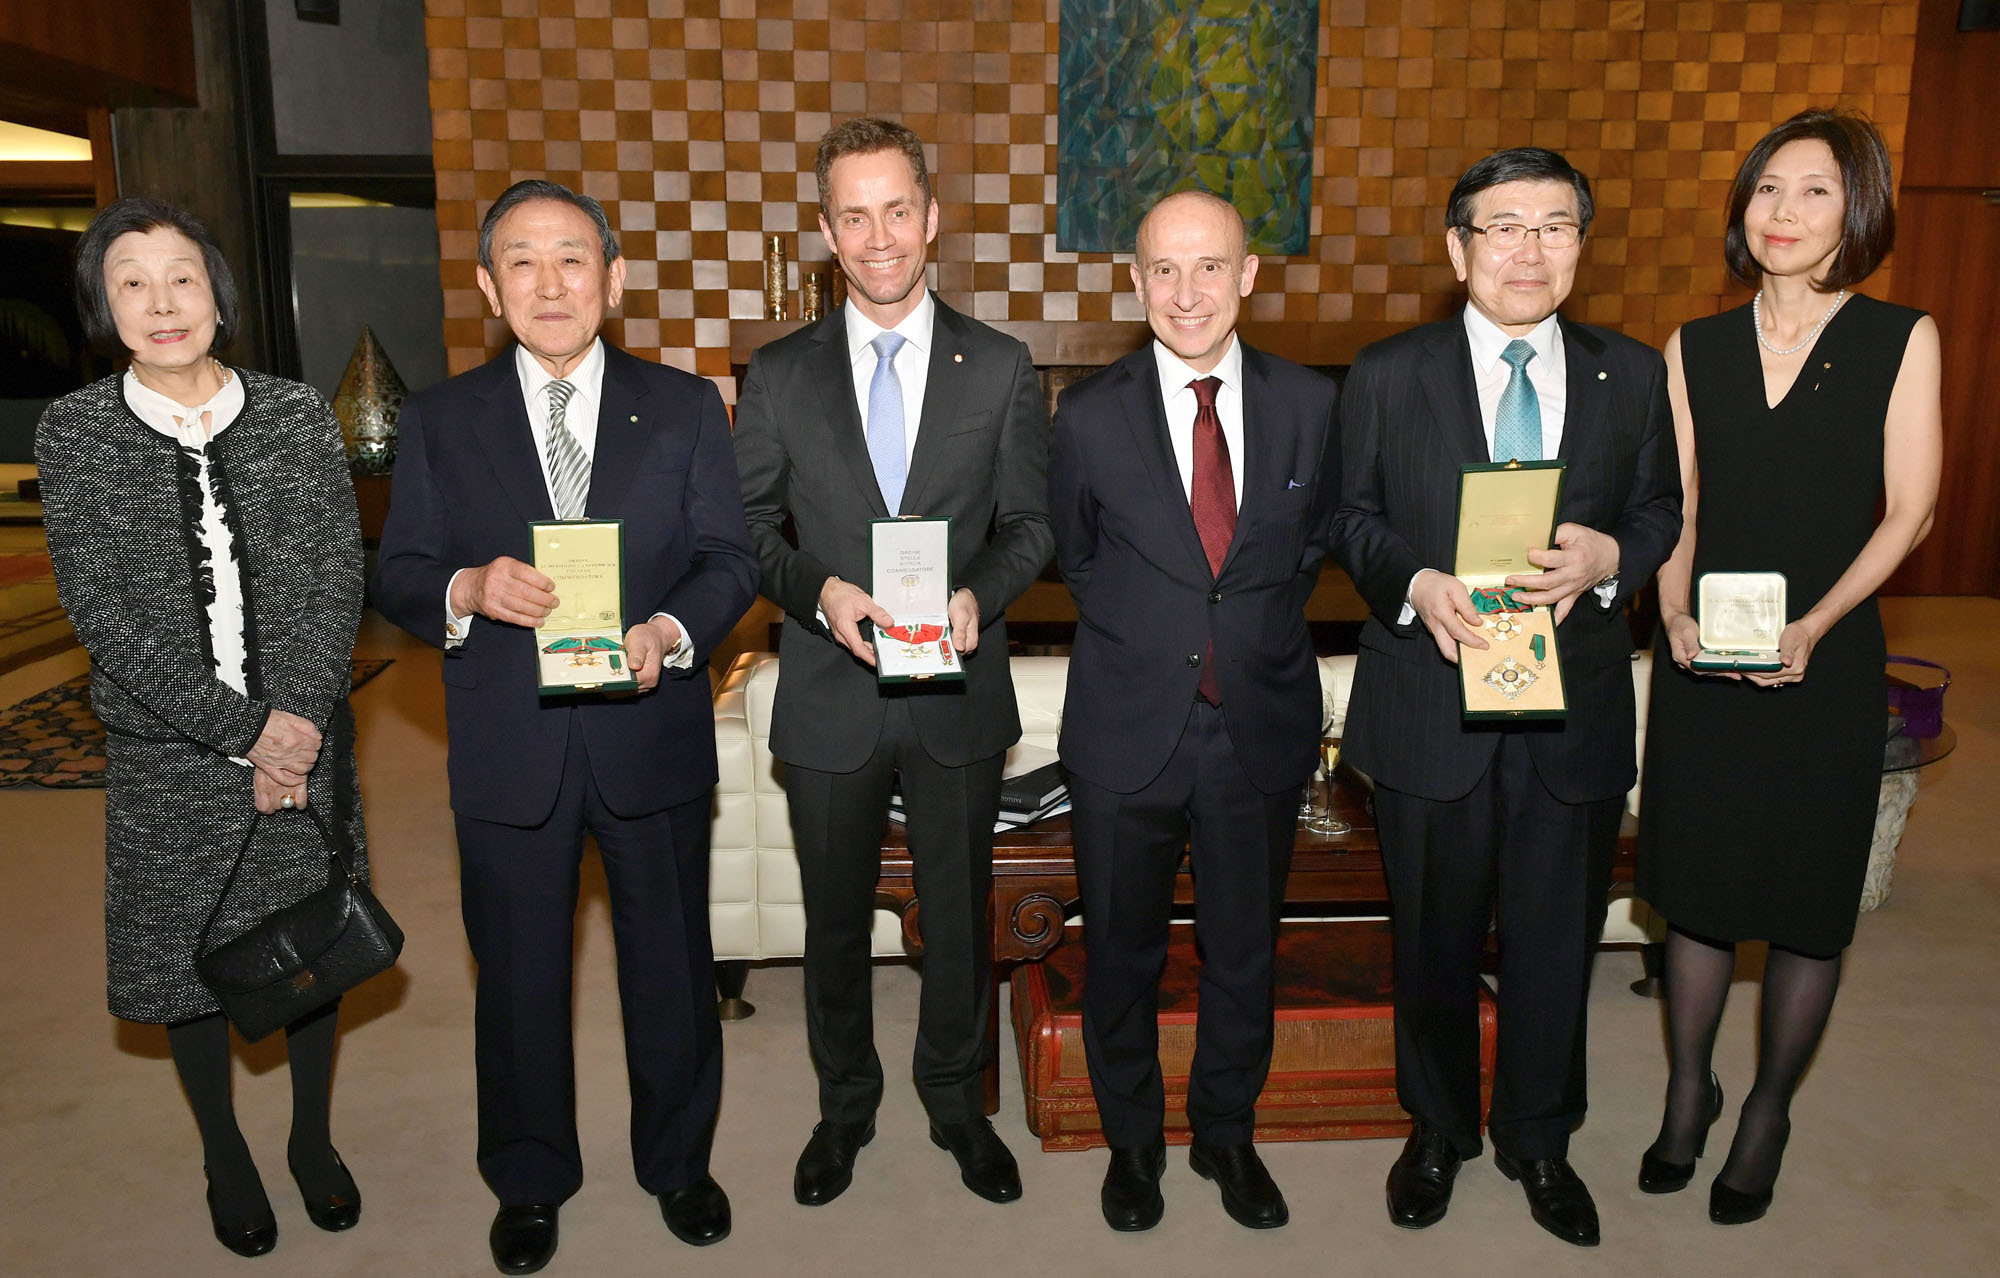 Italian Ambassador Giorgio Starace (third from right) joins Mitsui Chairman Masami Iijima (second from right) as he receives the Grand Officer Order of Merit of the Italian Republic at the ambassador's residence on Feb. 20. Meanwhile, Sanden Honorable Chairman Masayoshi Ushikubo (second from left) and his wife, Setsuko (far left), received the Commander Order of Merit of the Italian Republic, Akiko Kaneko (far right), a representative of Franciacorta Japan, received the Knight Order of Merit of the Italian Republic, and Tord Tukun (third from left), a minister-counsellor at the Norwegian Embassy, received      the Commander Order of the Star      of Italy. yoshiaki miura |